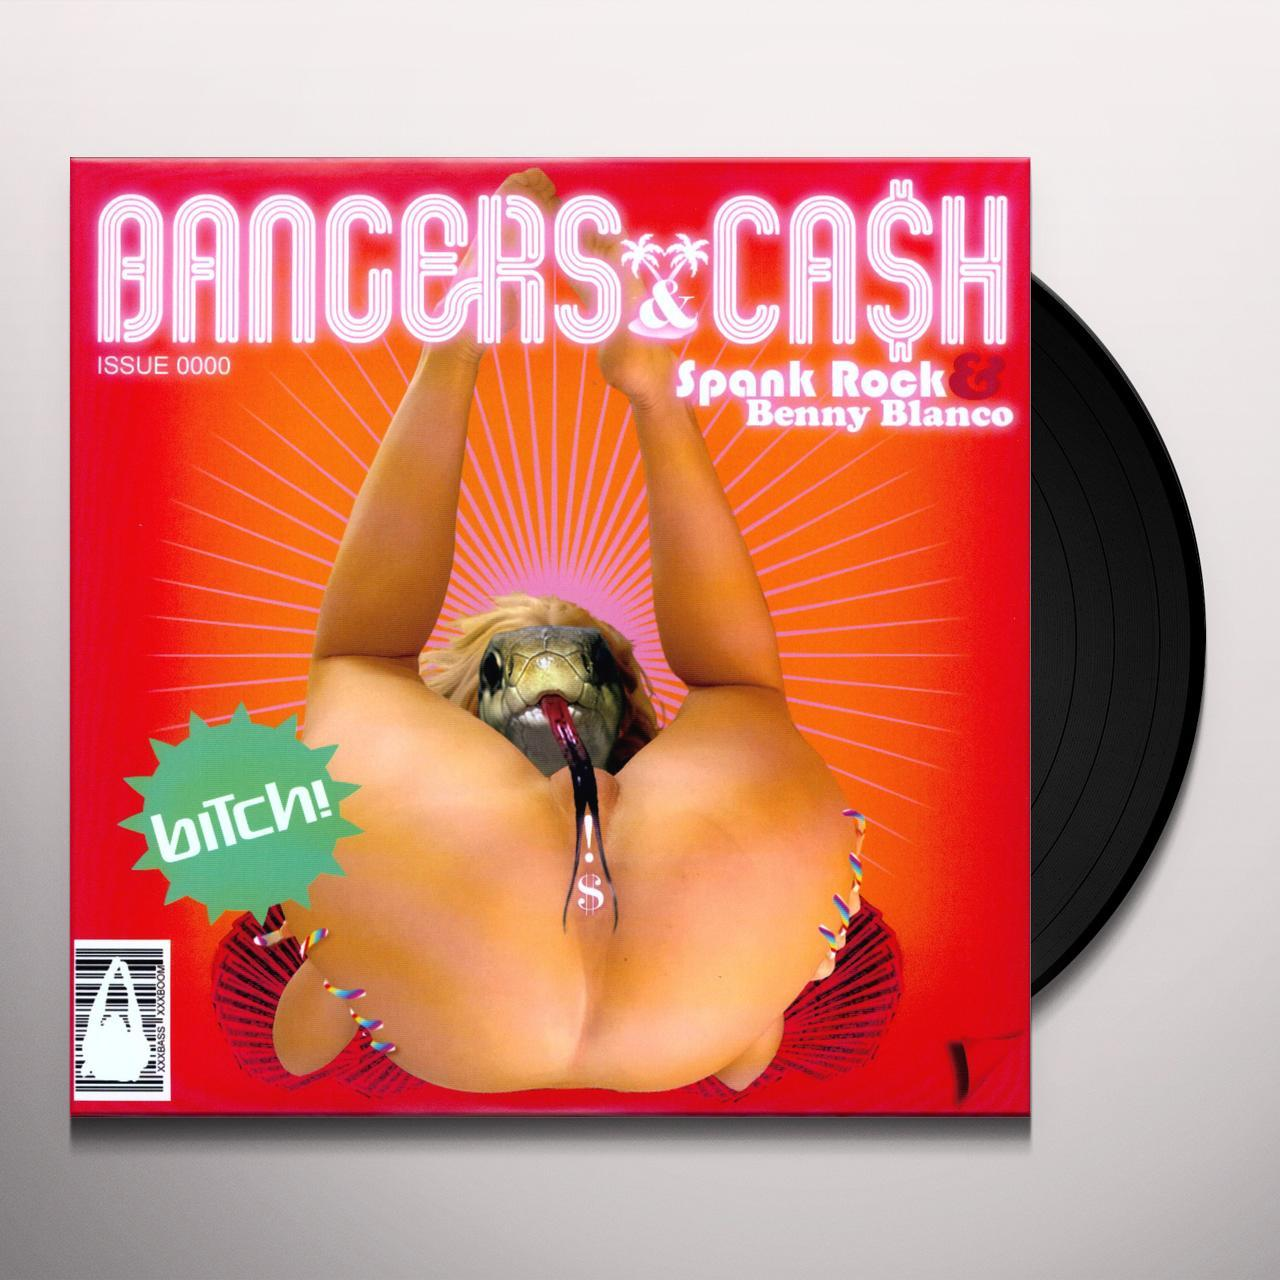 best of Blanco and benny Spank bangers & cash rock are